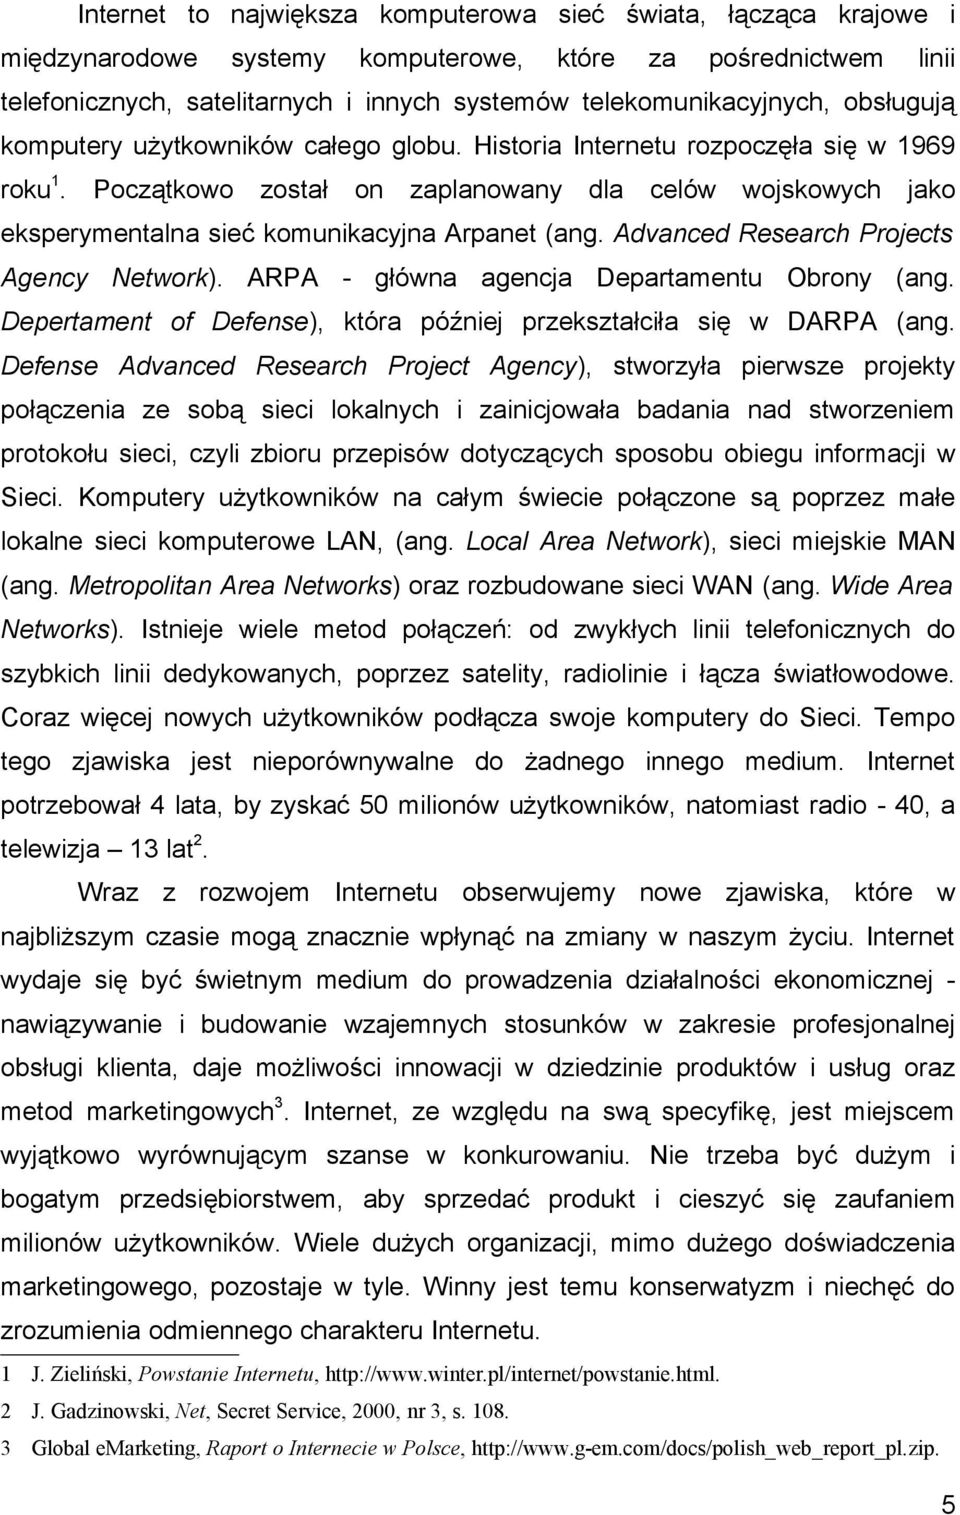 Początkowo został on zaplanowany dla celów wojskowych jako eksperymentalna sieć komunikacyjna Arpanet (ang. Advanced Research Projects Agency Network). ARPA - główna agencja Departamentu Obrony (ang.